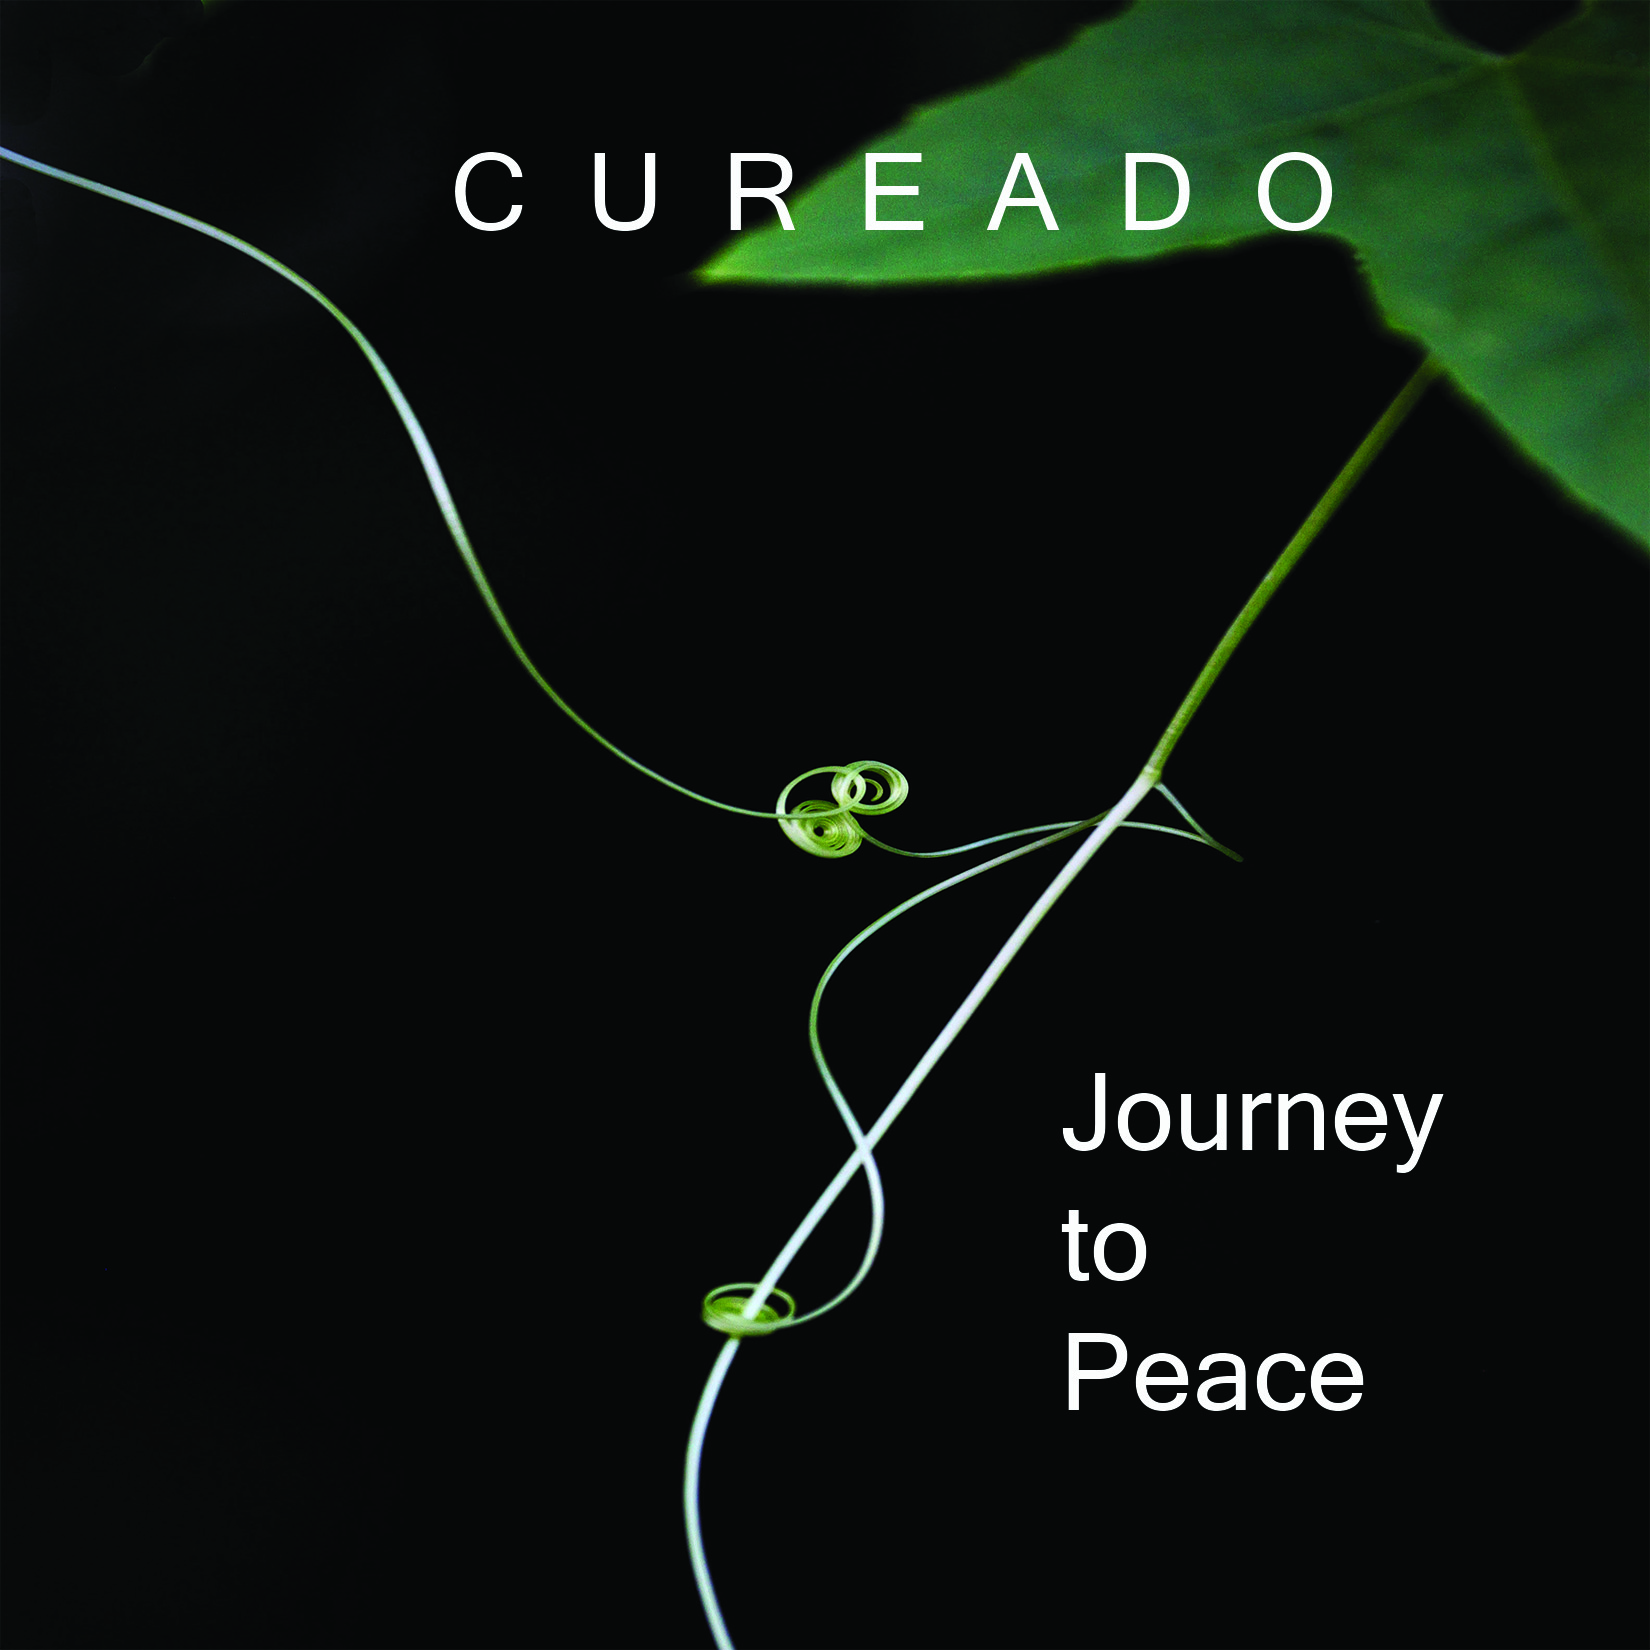 """The first Cureado EP, Is now available for listening and purchase. Photo """"Vine Tendril"""" courtesy of Anne Majusiak. (c) 2018 Anne Majusiak."""